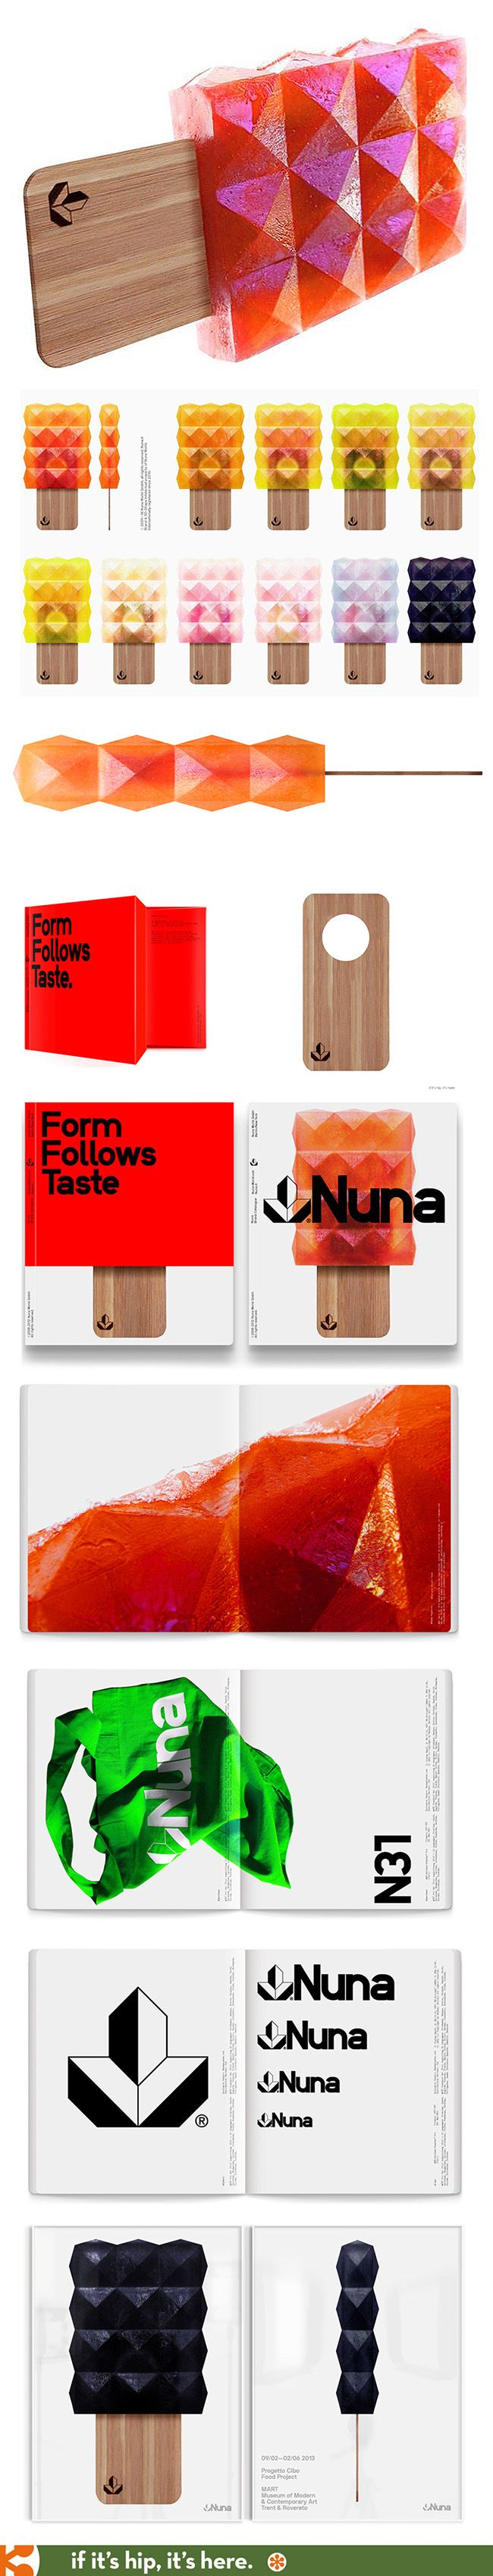 What happens when an architect, a designer and a molecular gastronomic chef create a popsicle and its branding at http://www.ifitshipitshere.com/nuna-popsicles-and-branding/